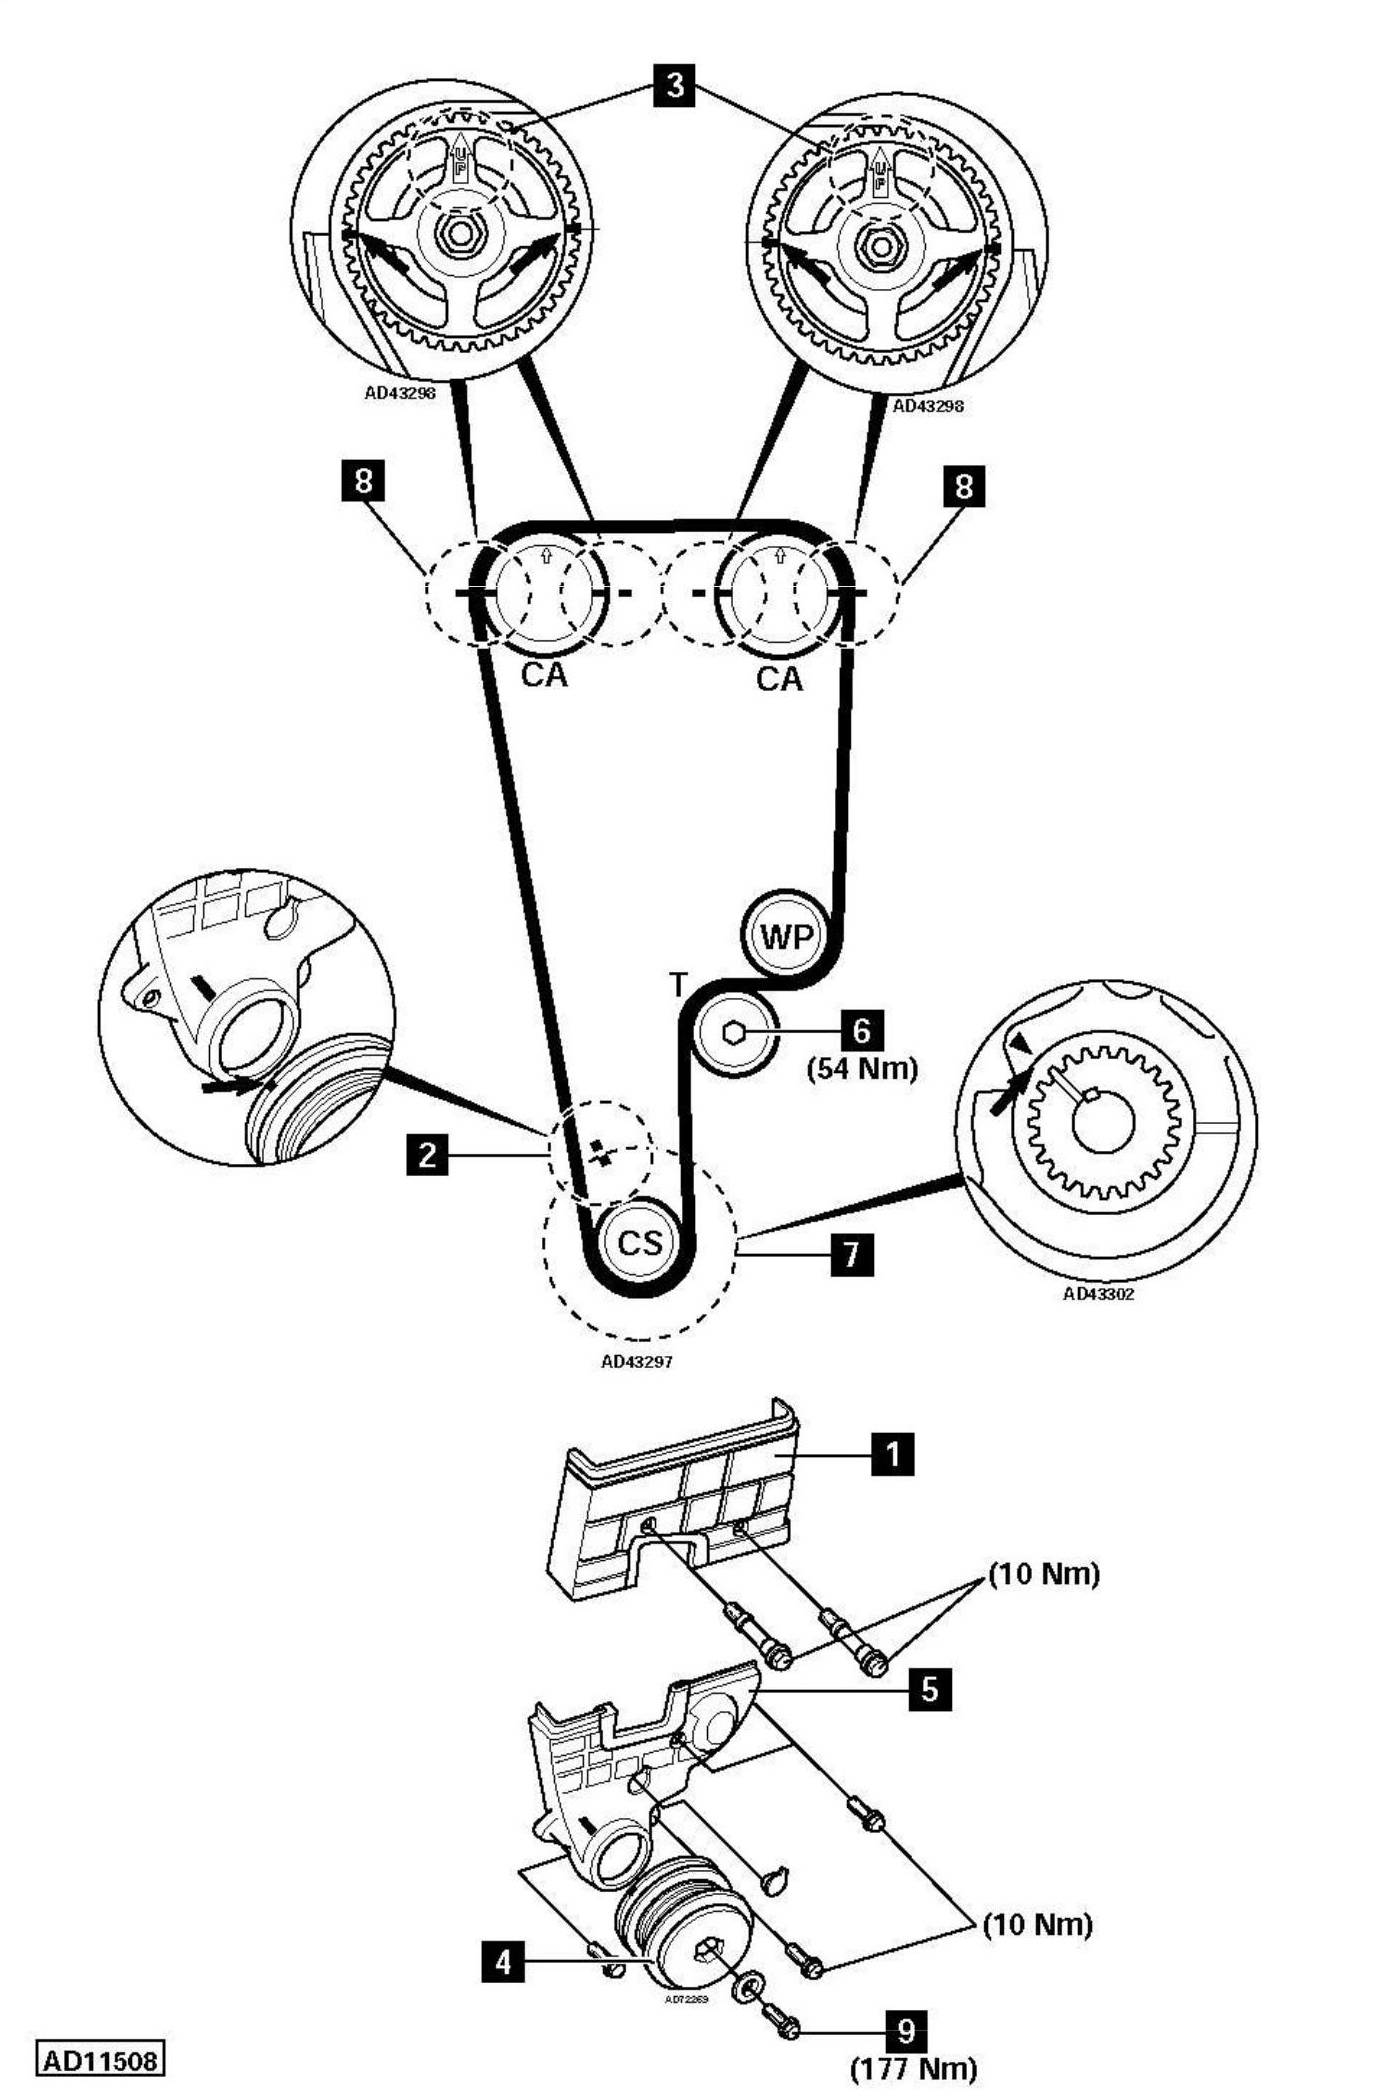 Honda Timing Chain Diagram Honda Auto Parts Catalog And